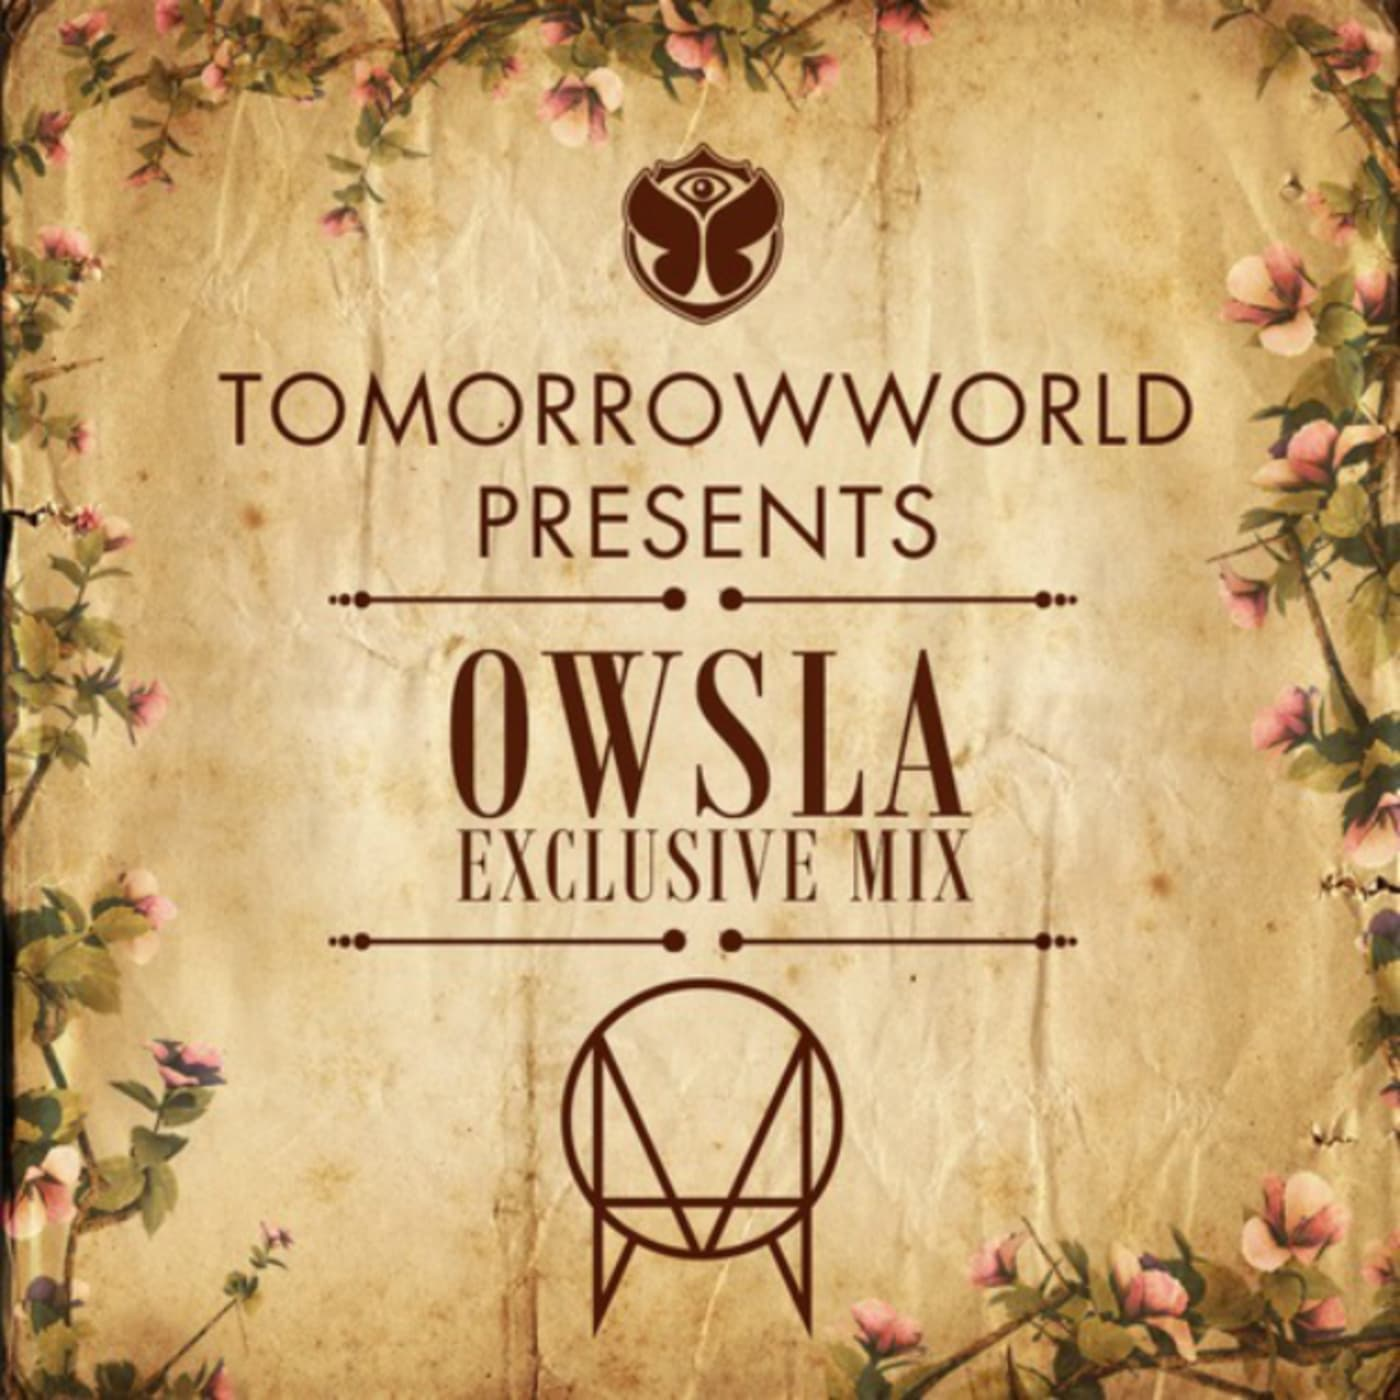 owsla exclusive mix